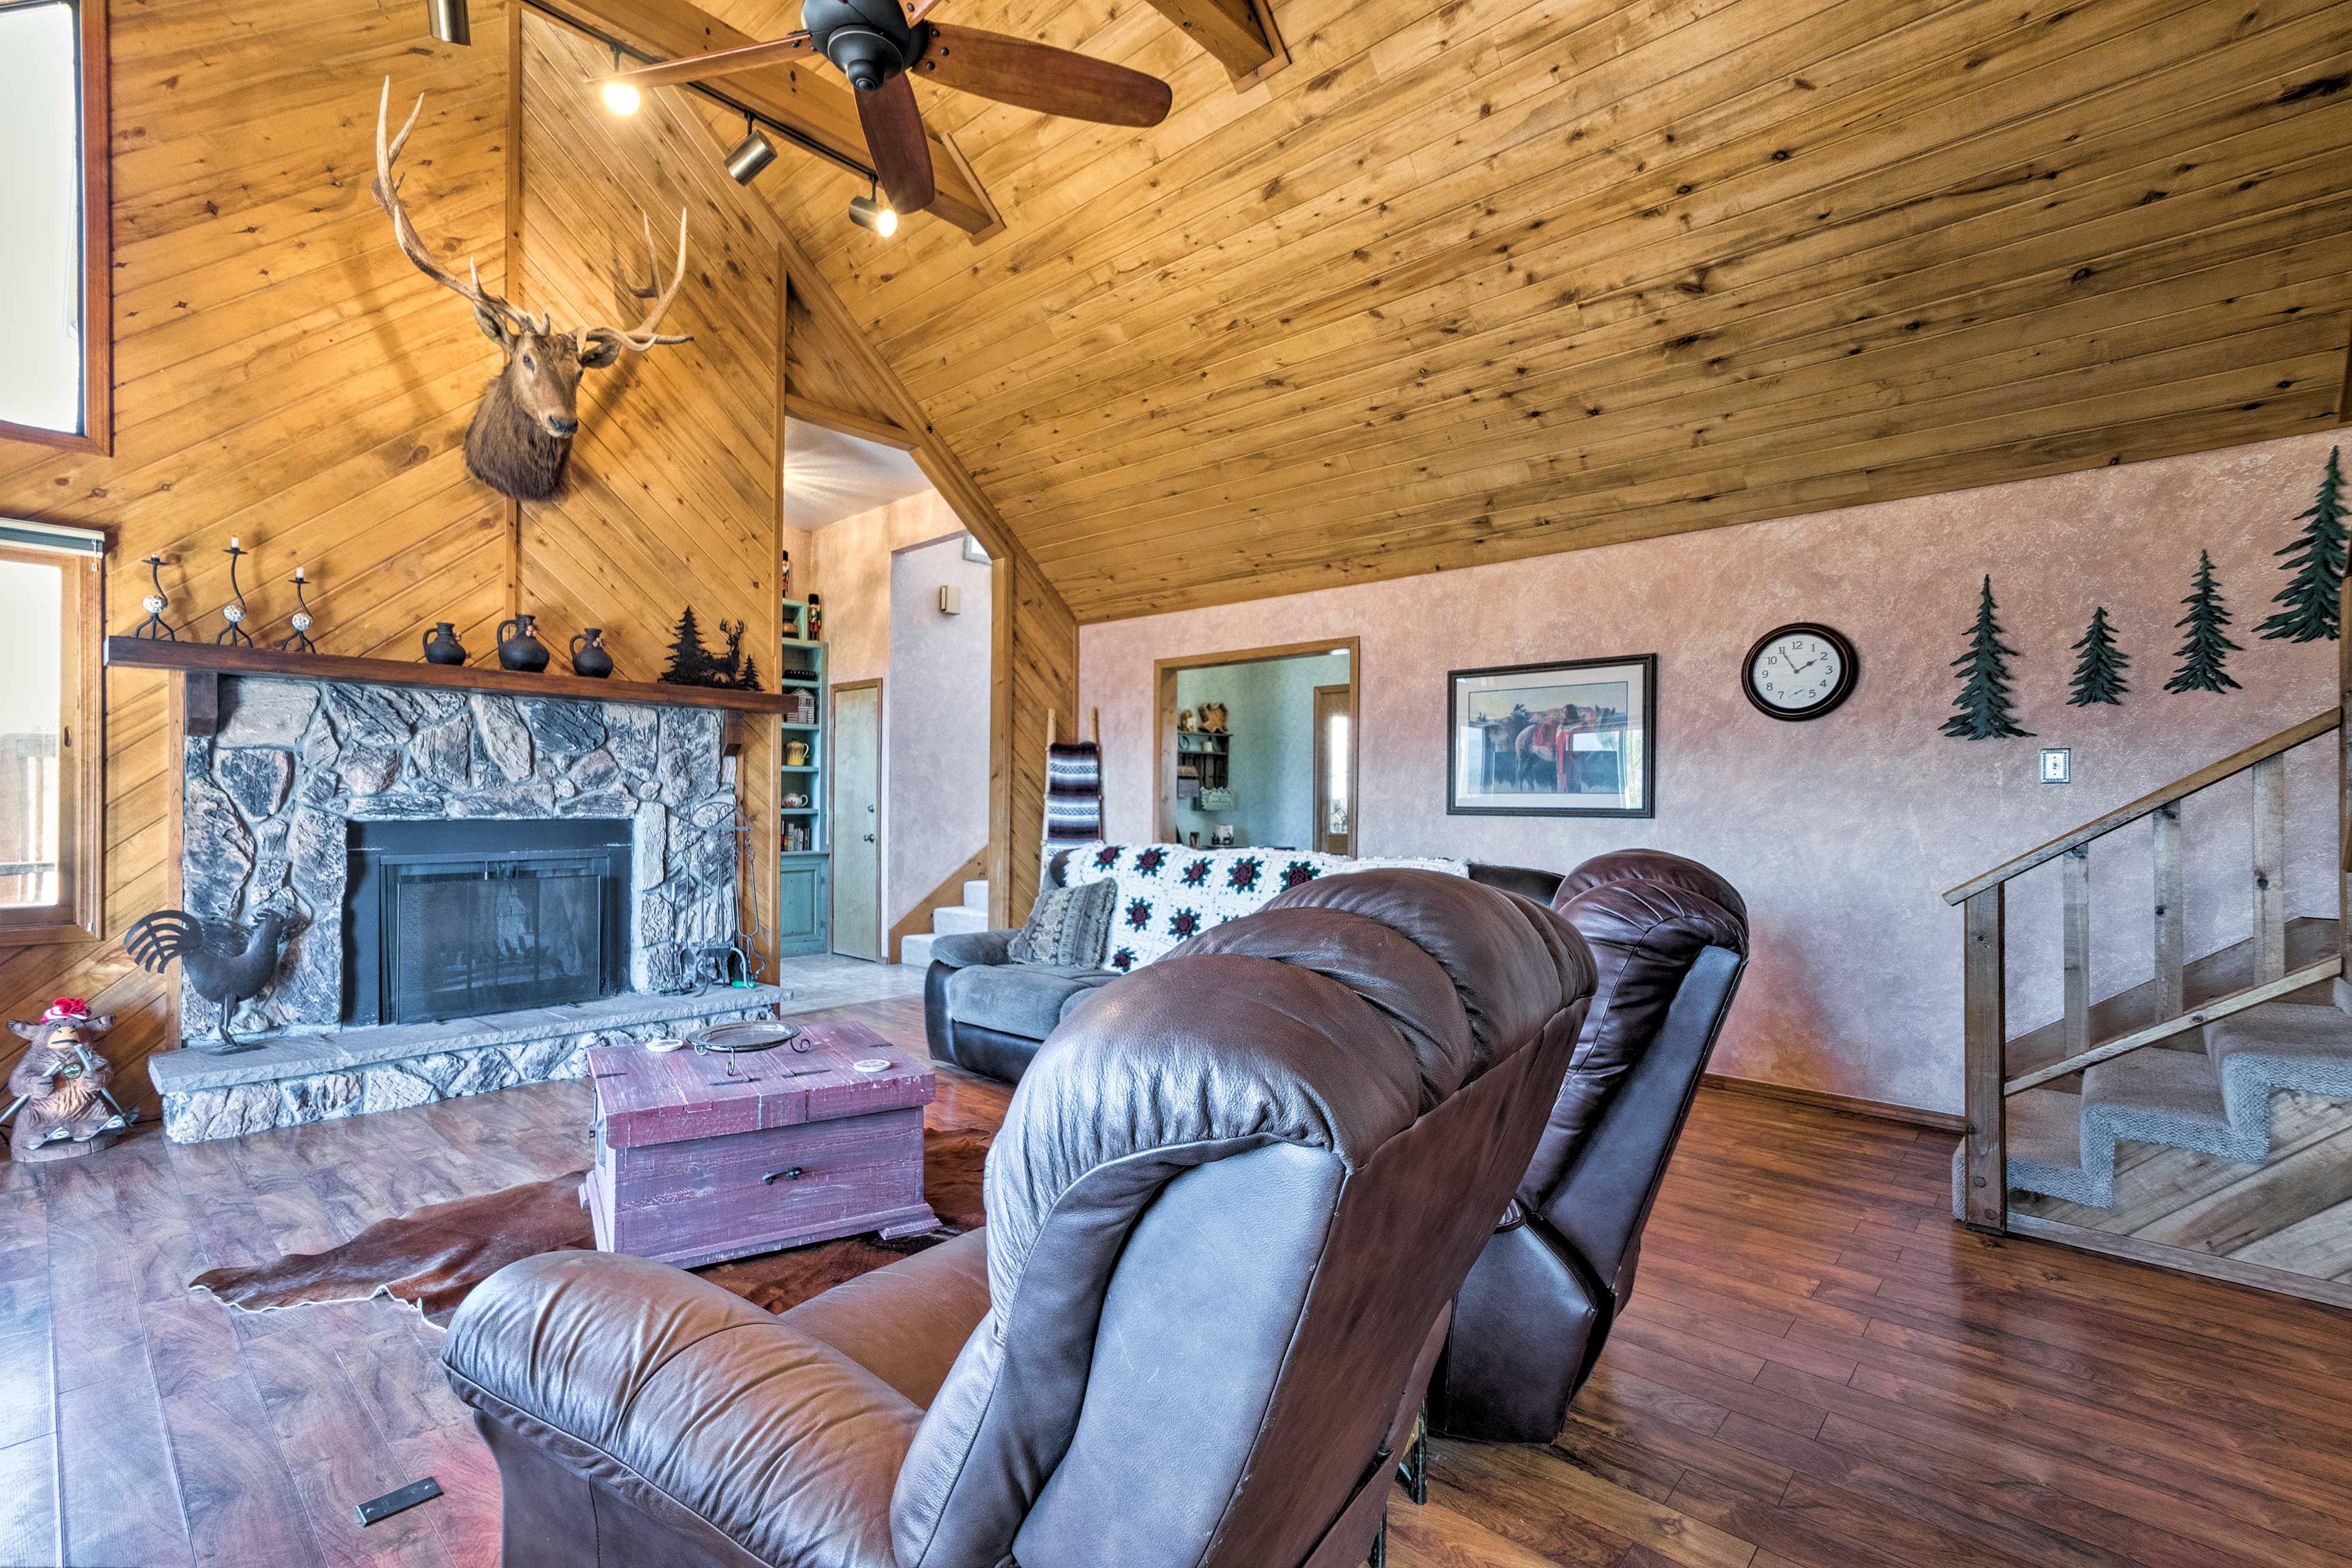 The great room boasts vaulted ceilings and a stone fireplace.